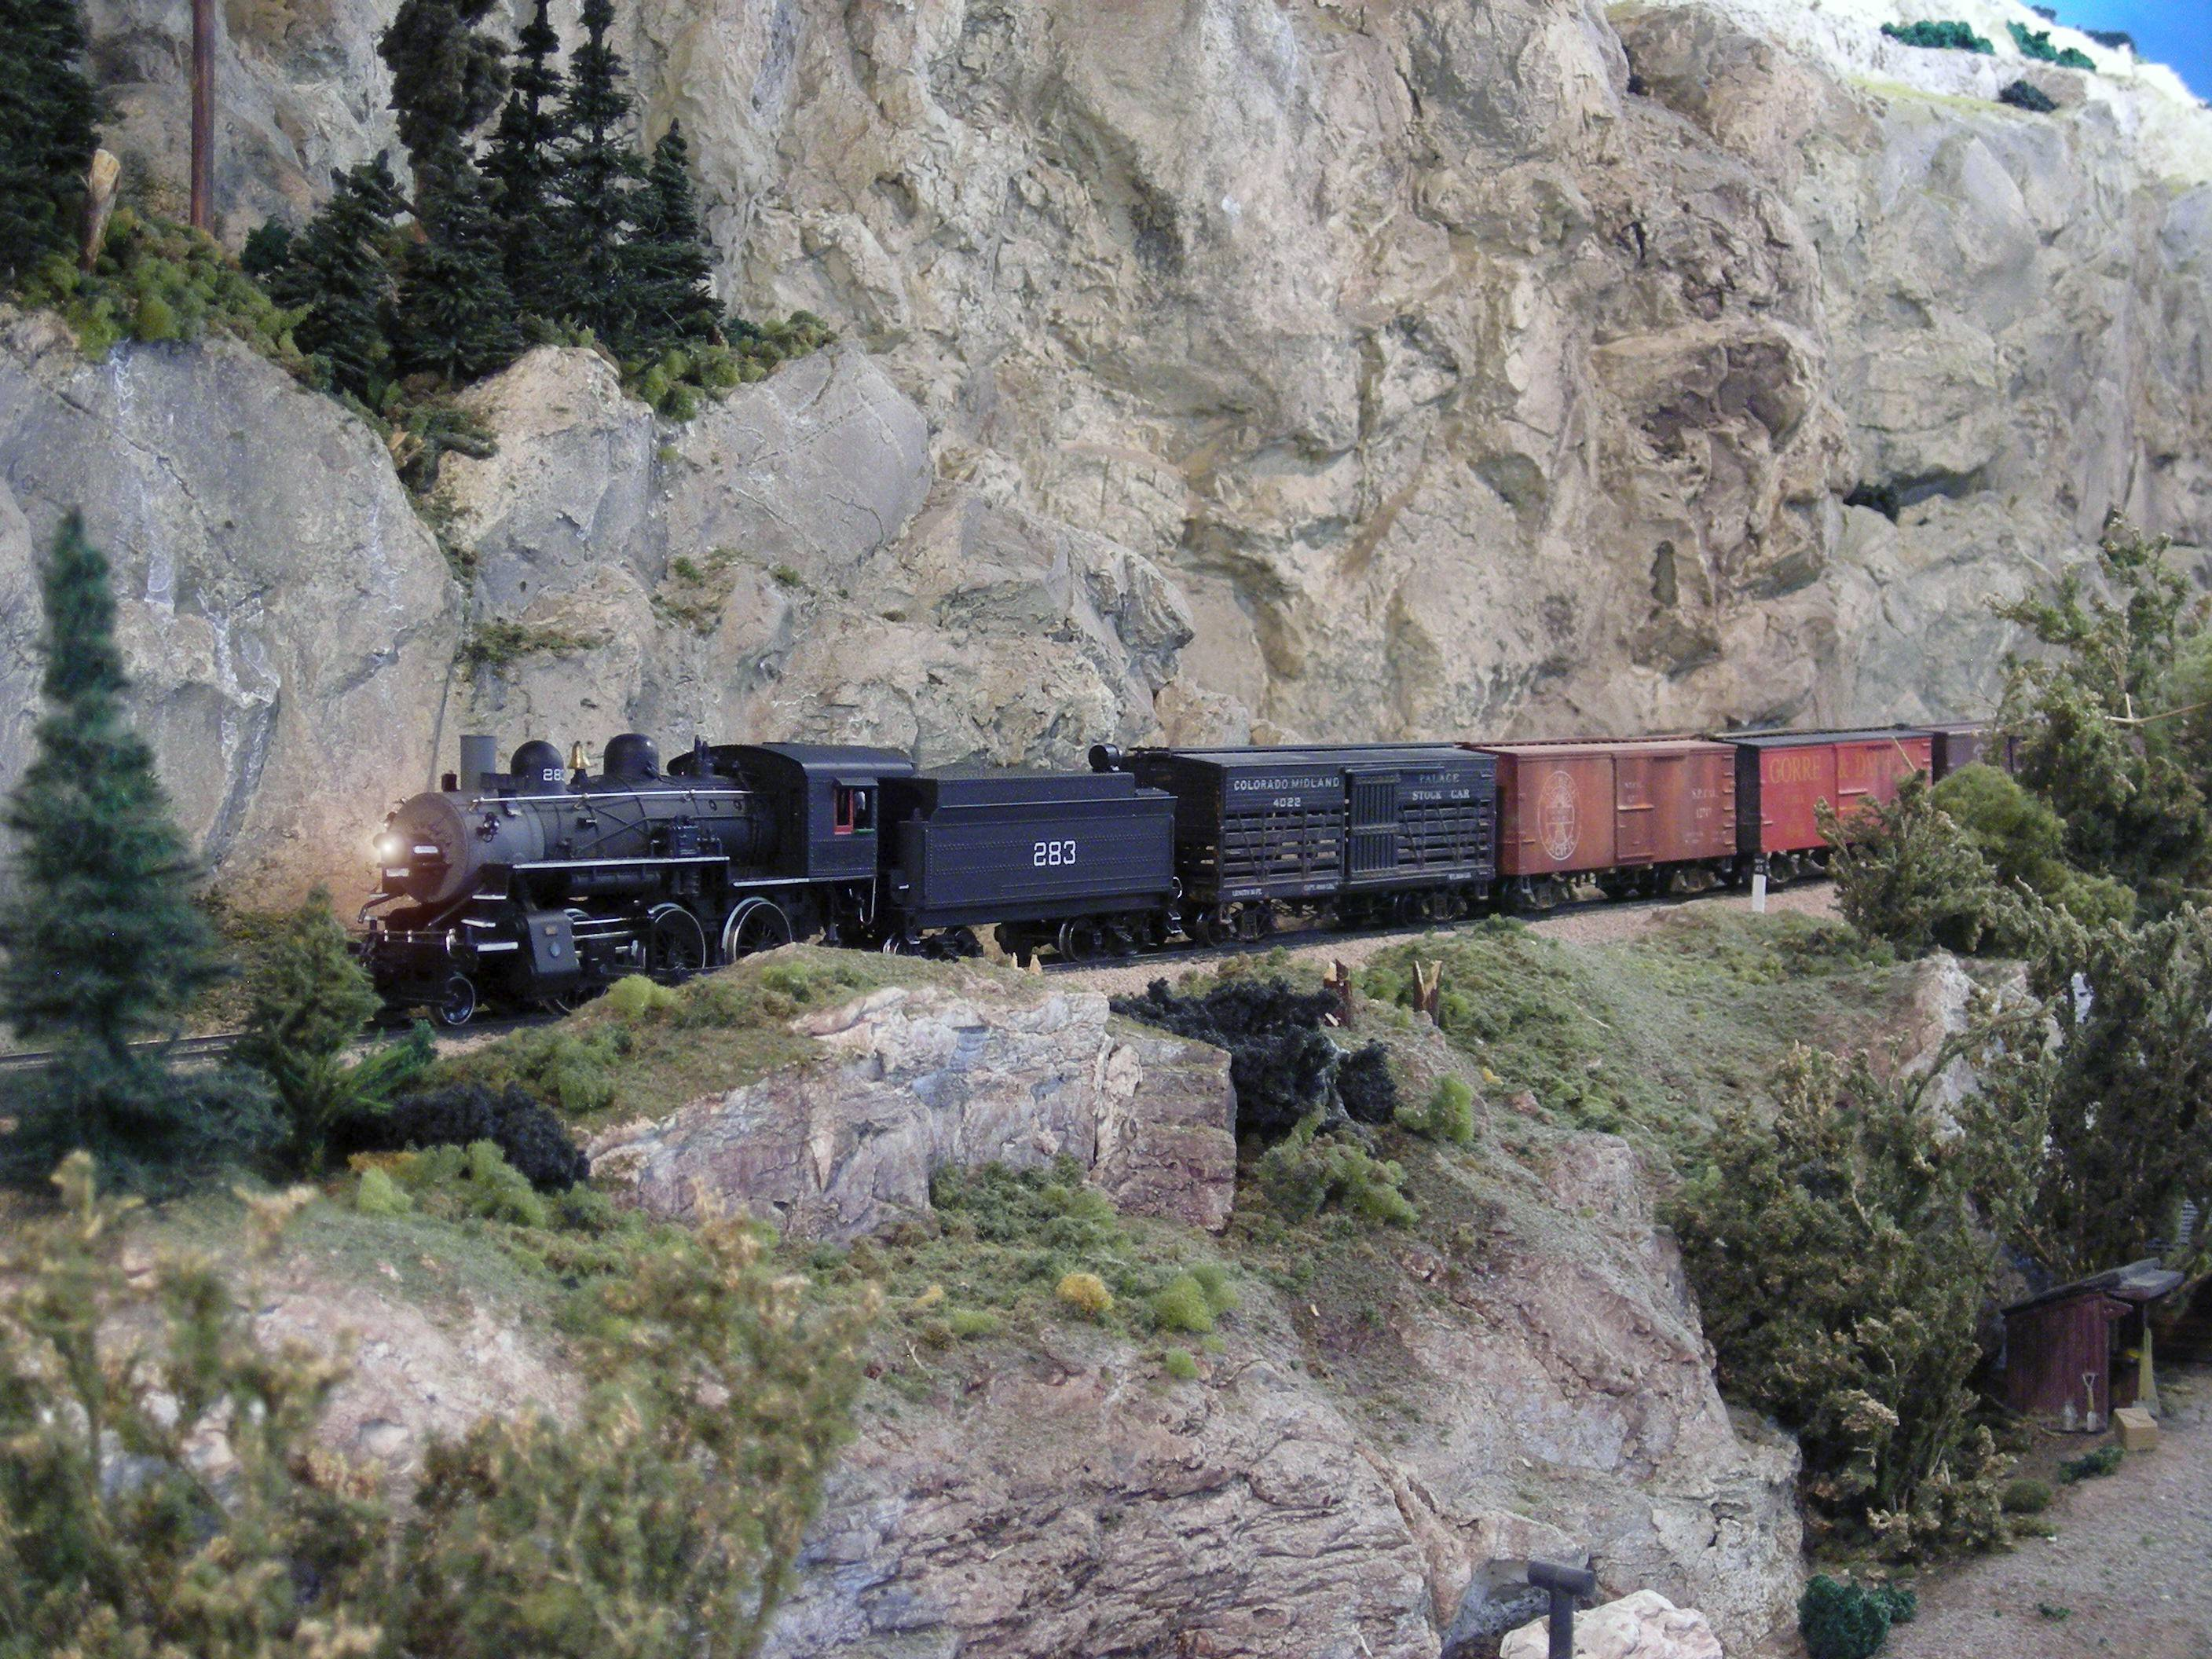 Courtesy of Norm KocolSee an HO scale operating model railroad at the Lake County Model Railroad Club's Spring Open House.